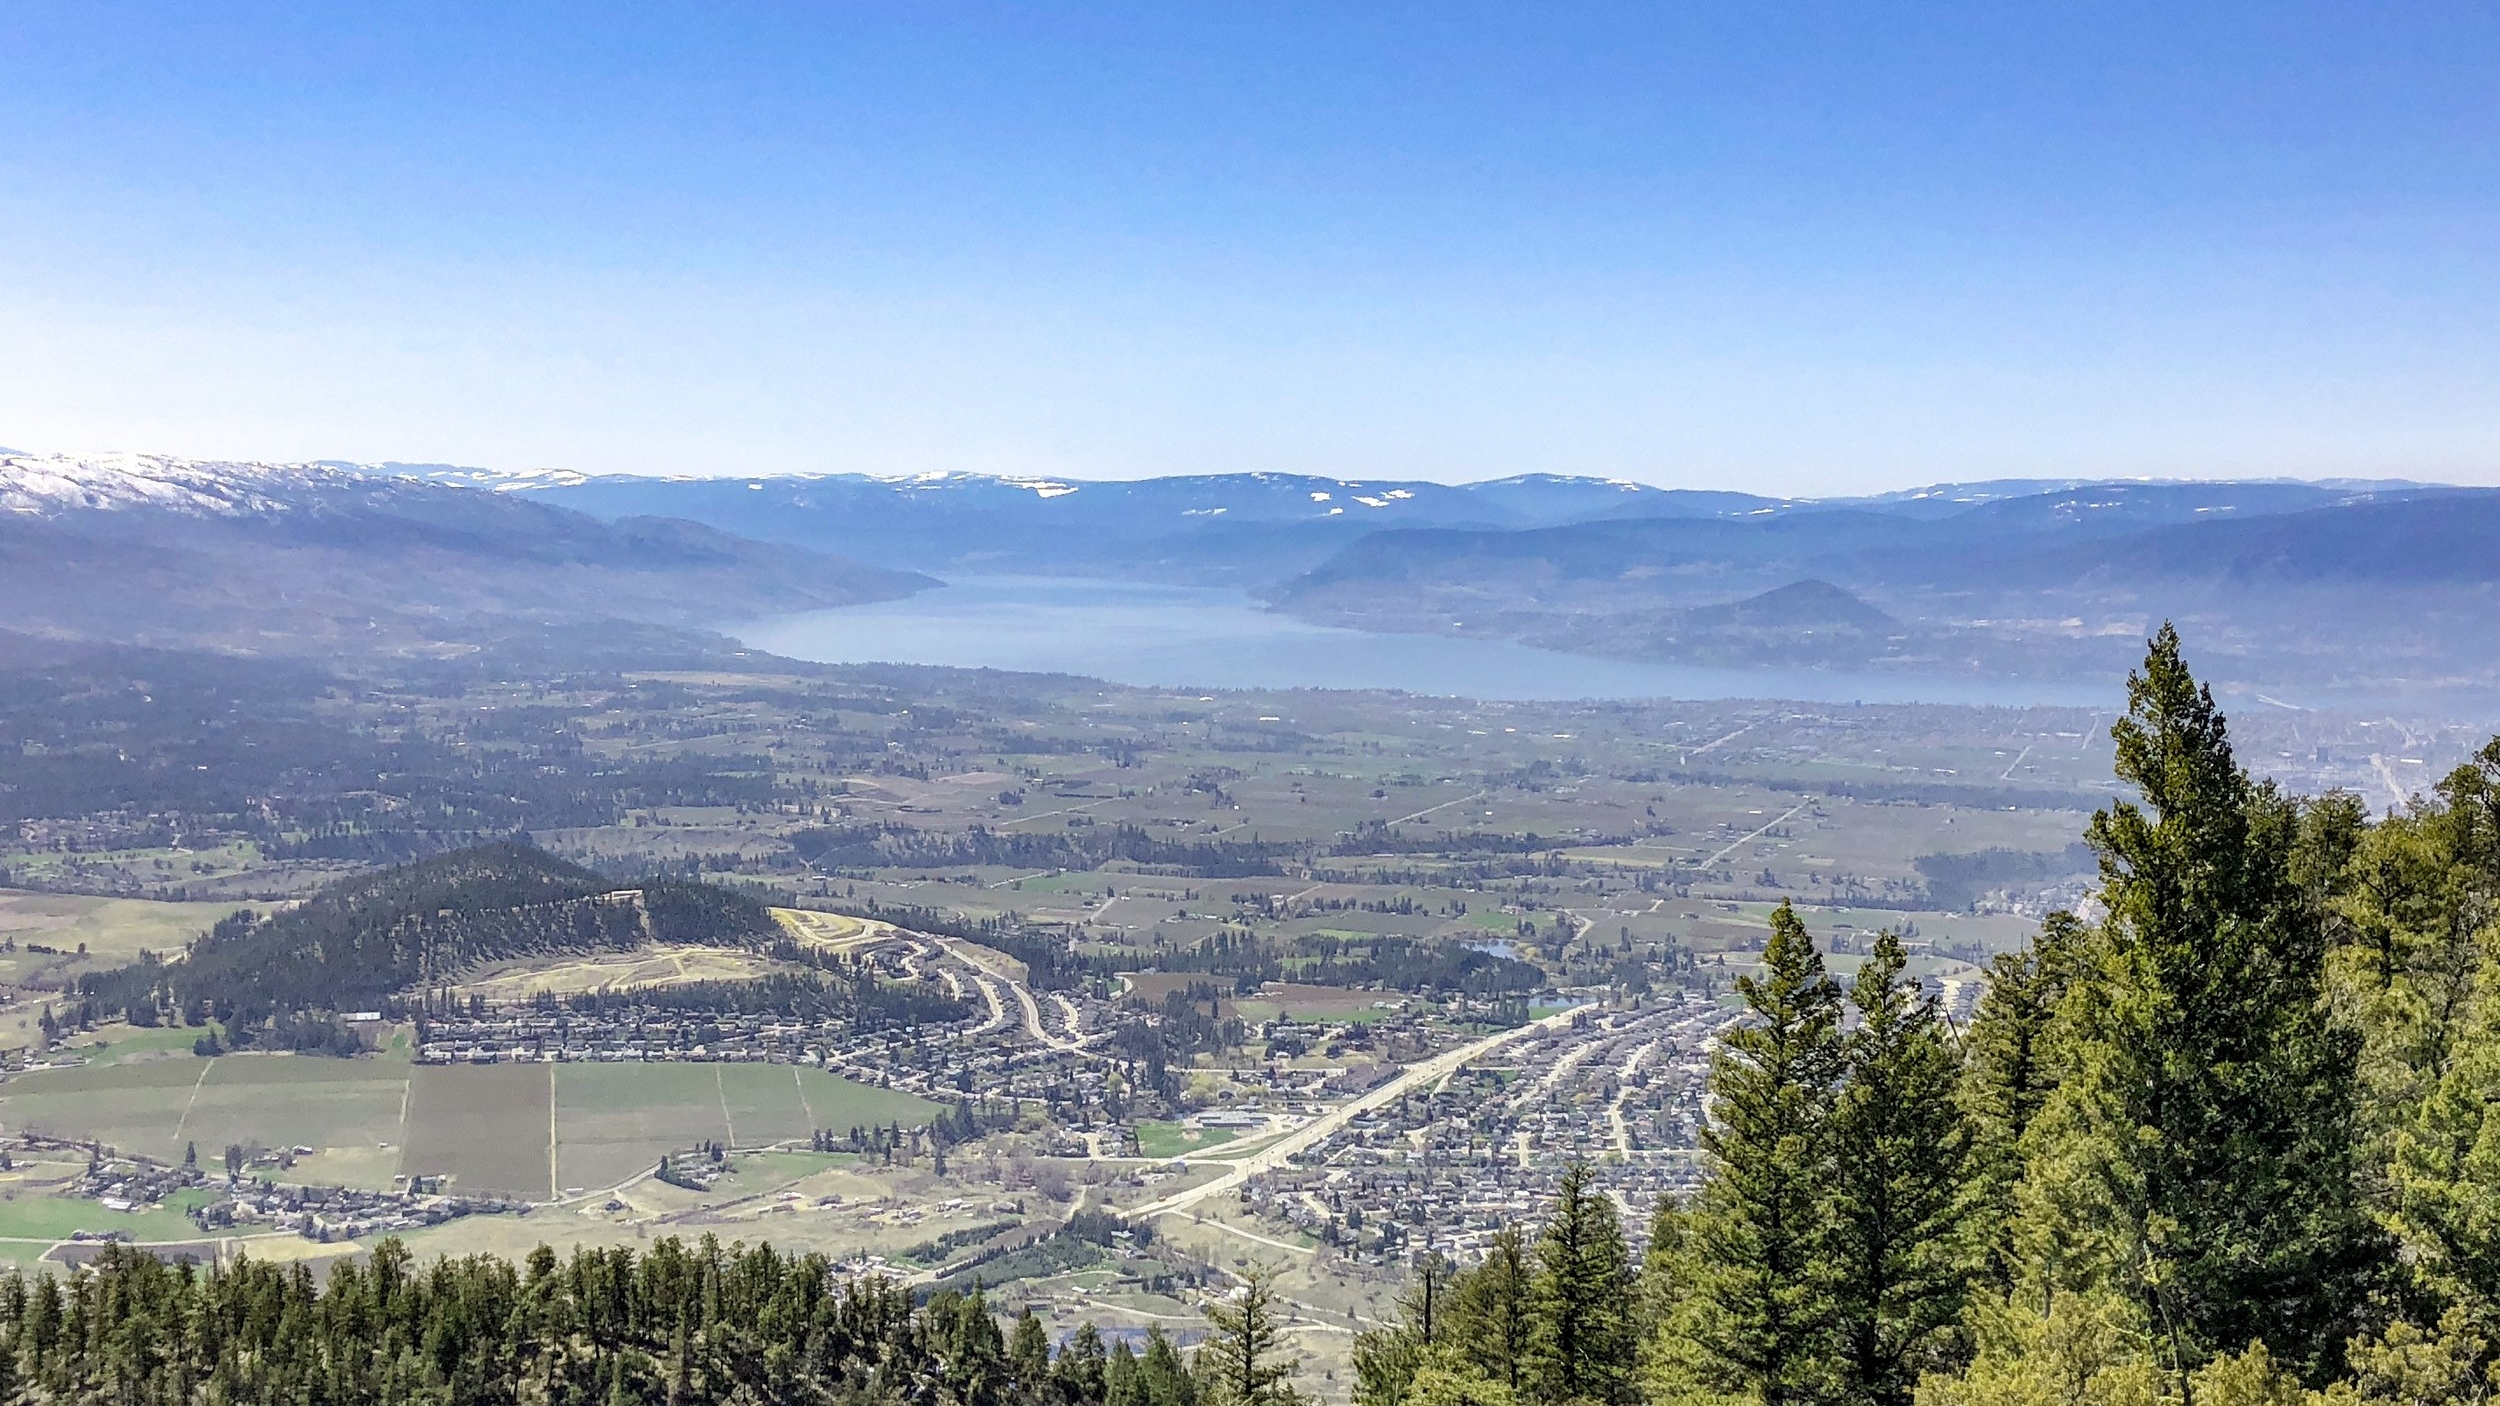 The Okanagan Valley, City of Kelowna, viewed from the top of Black Mountain showing Black Mountain neighbourhood and  Kirschner Mountain in the foreground , vineyards and orchards of Southeast Kelowna, Okanagan Lake, and mountains in the background.